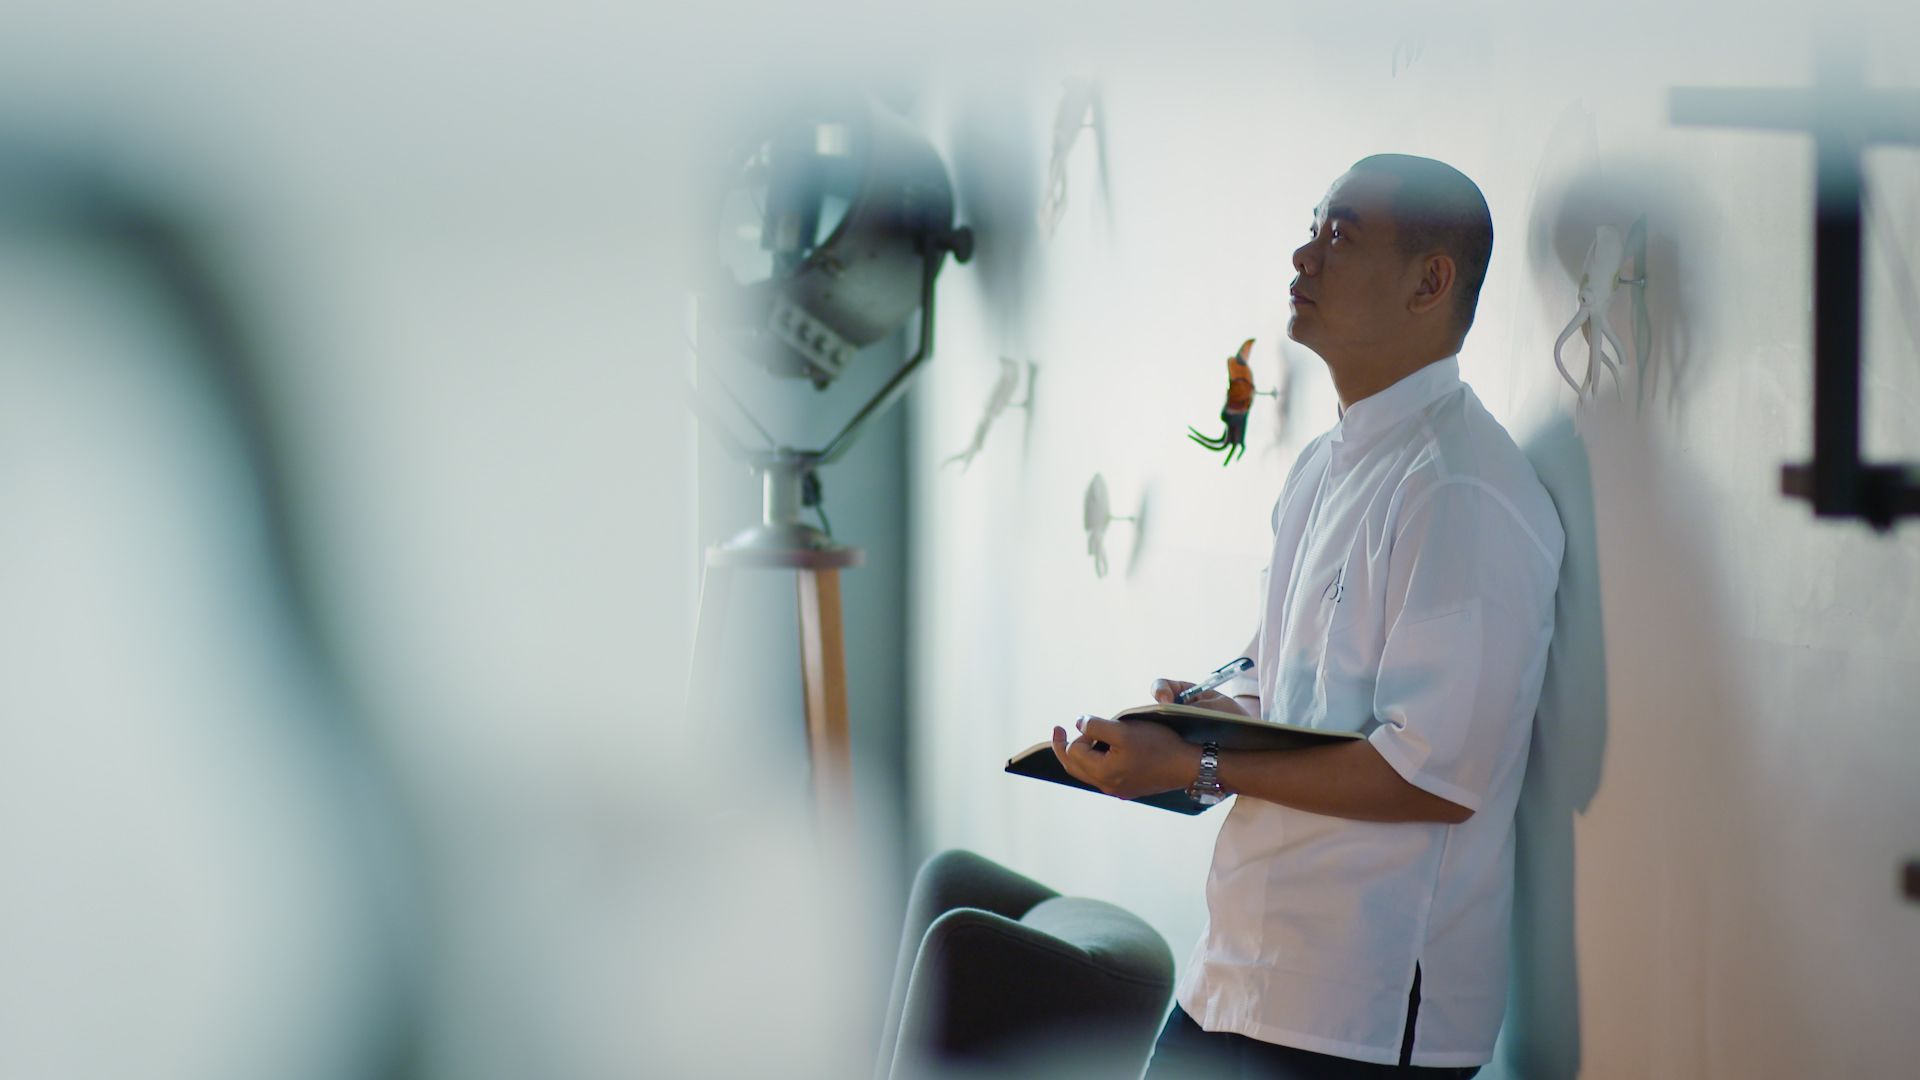 André Chiang To Close Restaurant In February 2018